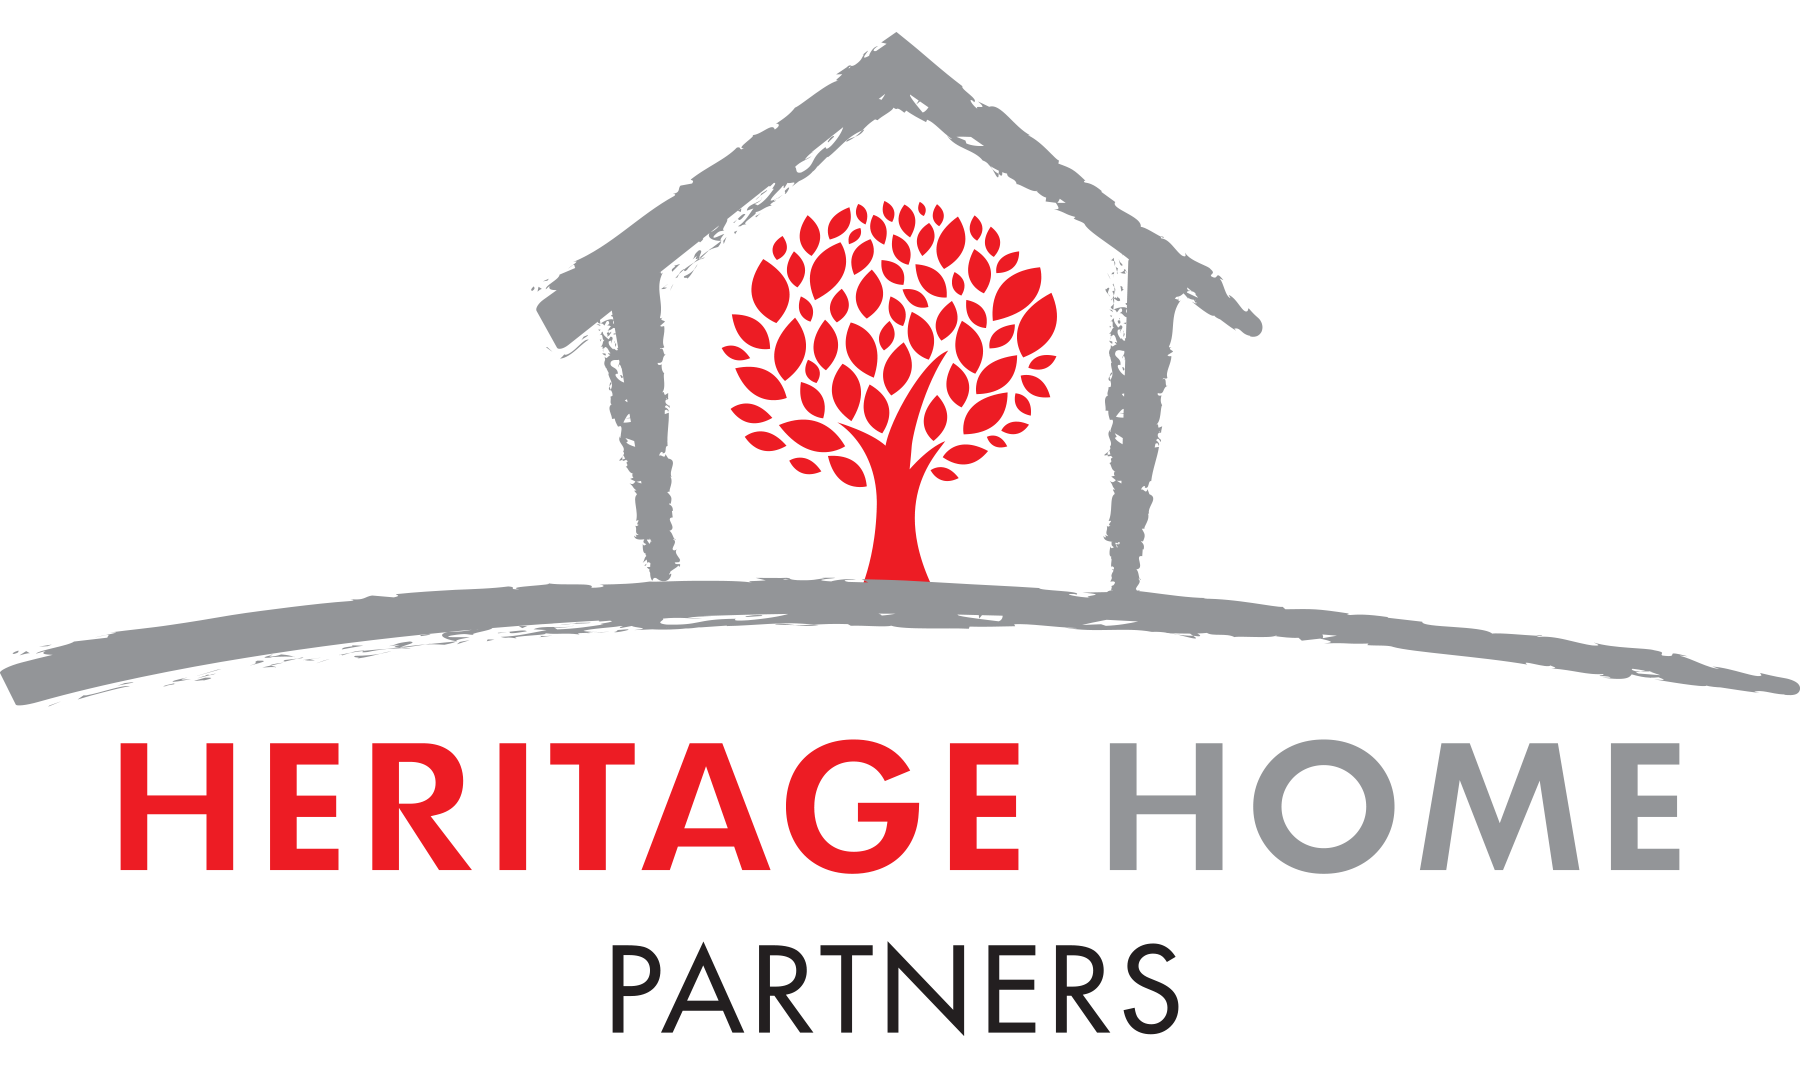 Heritage Home Partners